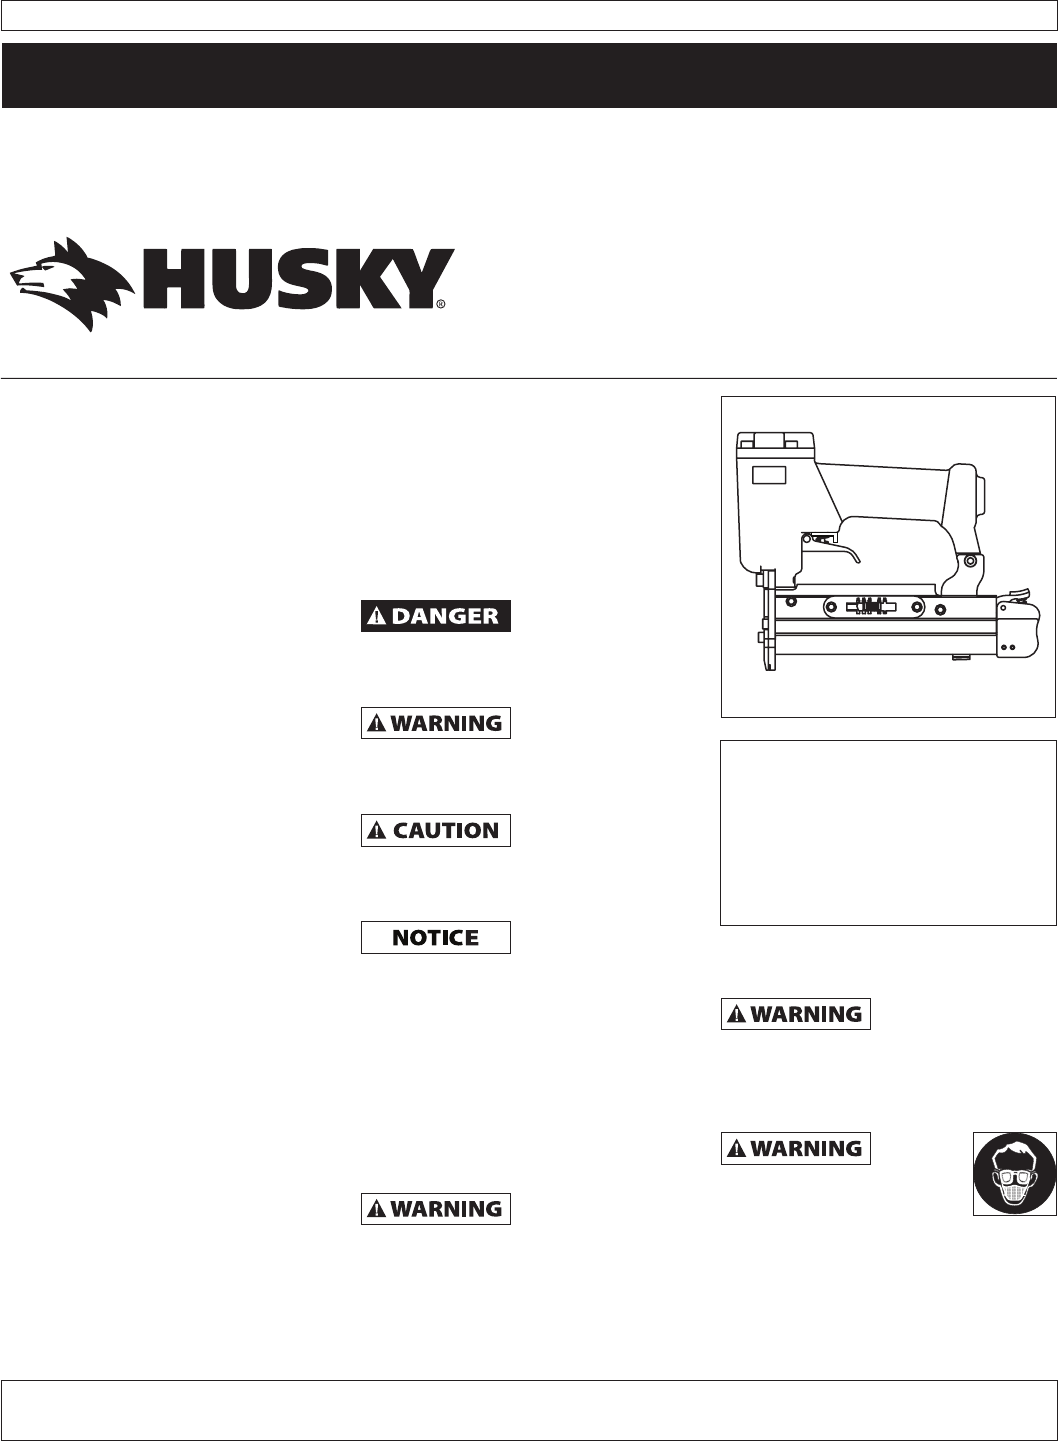 husky nail gun hdn10500 user guide manualsonline com rh powertool manualsonline com